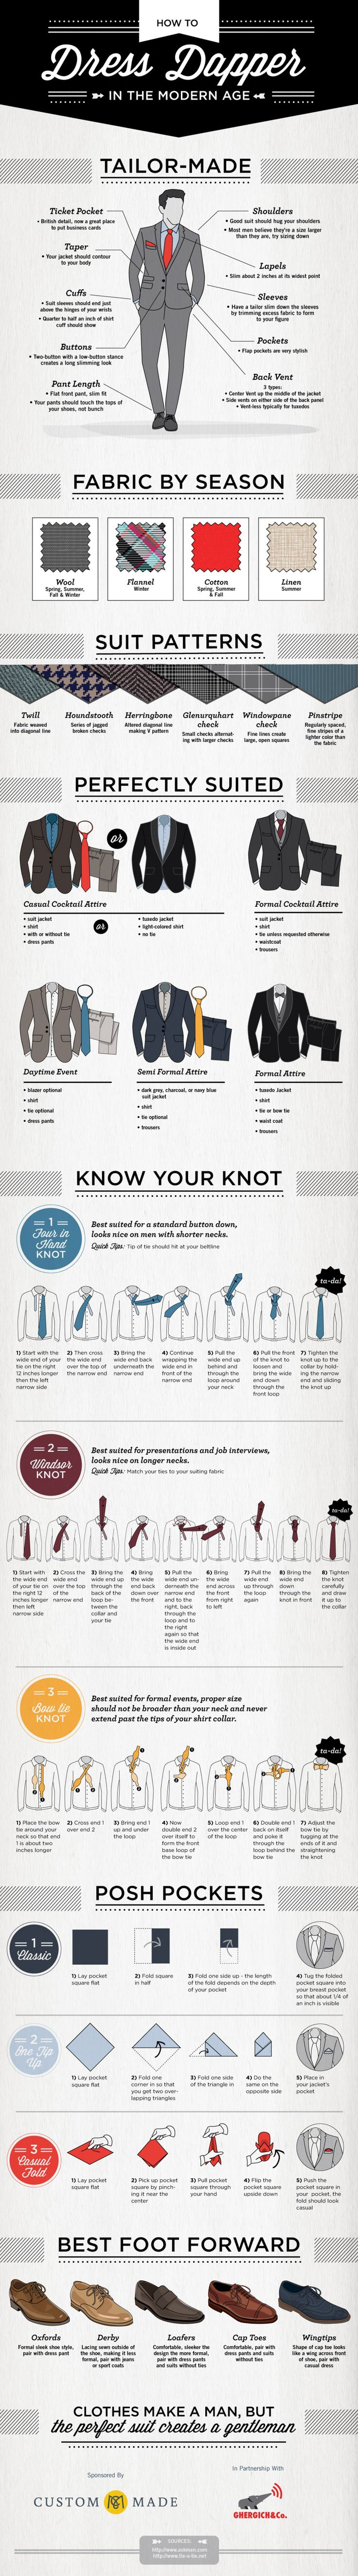 """While women's styles vary greatly between seasons, a man in a suit is usually the epitome of style, unless that suit is too big, too small, or too outdated. www.custommade.com has created an infographic entitled """"How to Dress Dapper in the Modern Age"""", giving you a crash course in staying stylish in your suits."""